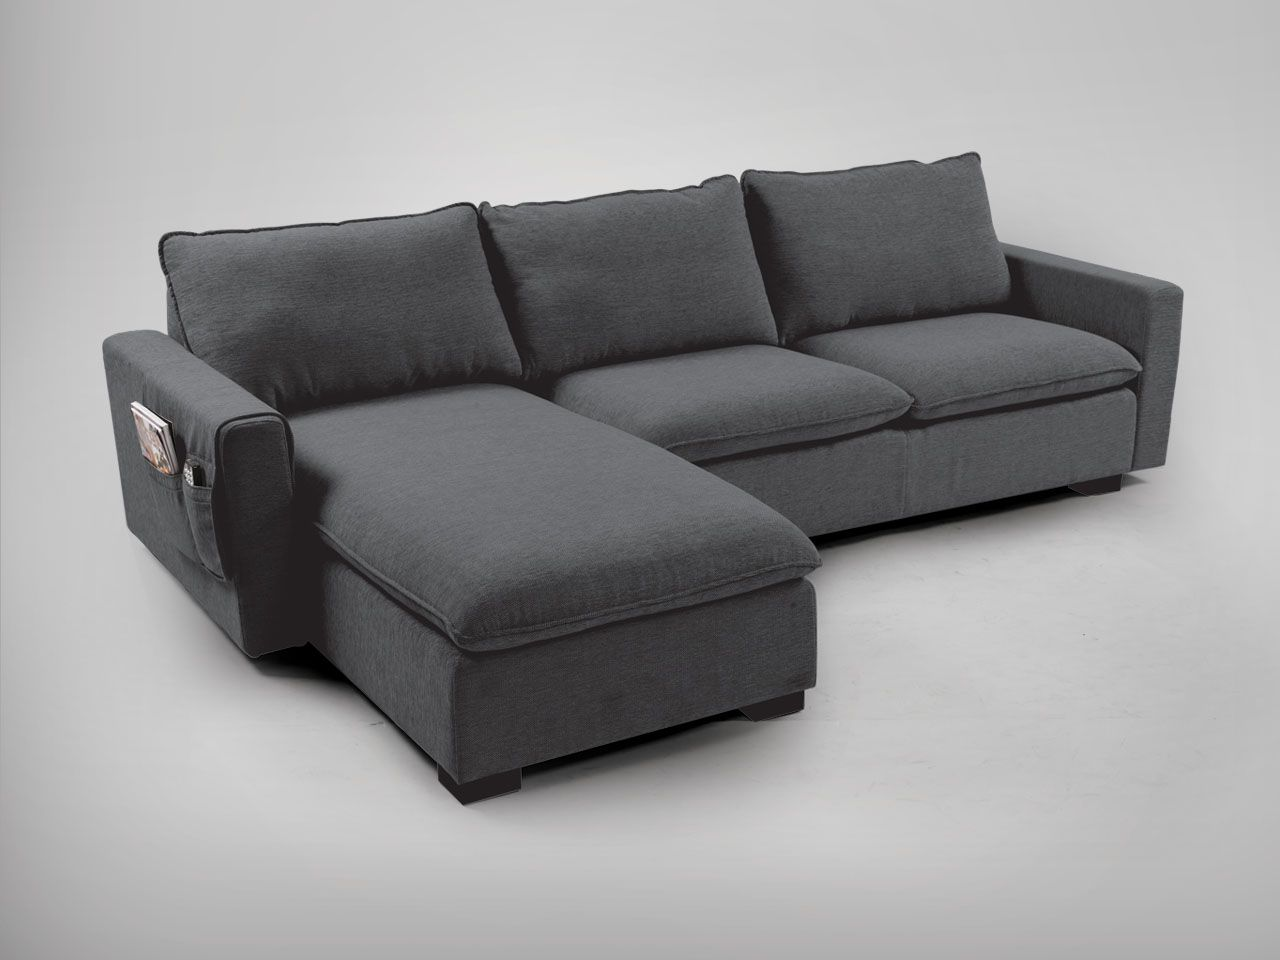 L Couch Grey L Shaped Sofas L Shaped Sofa Grey Sofa Design